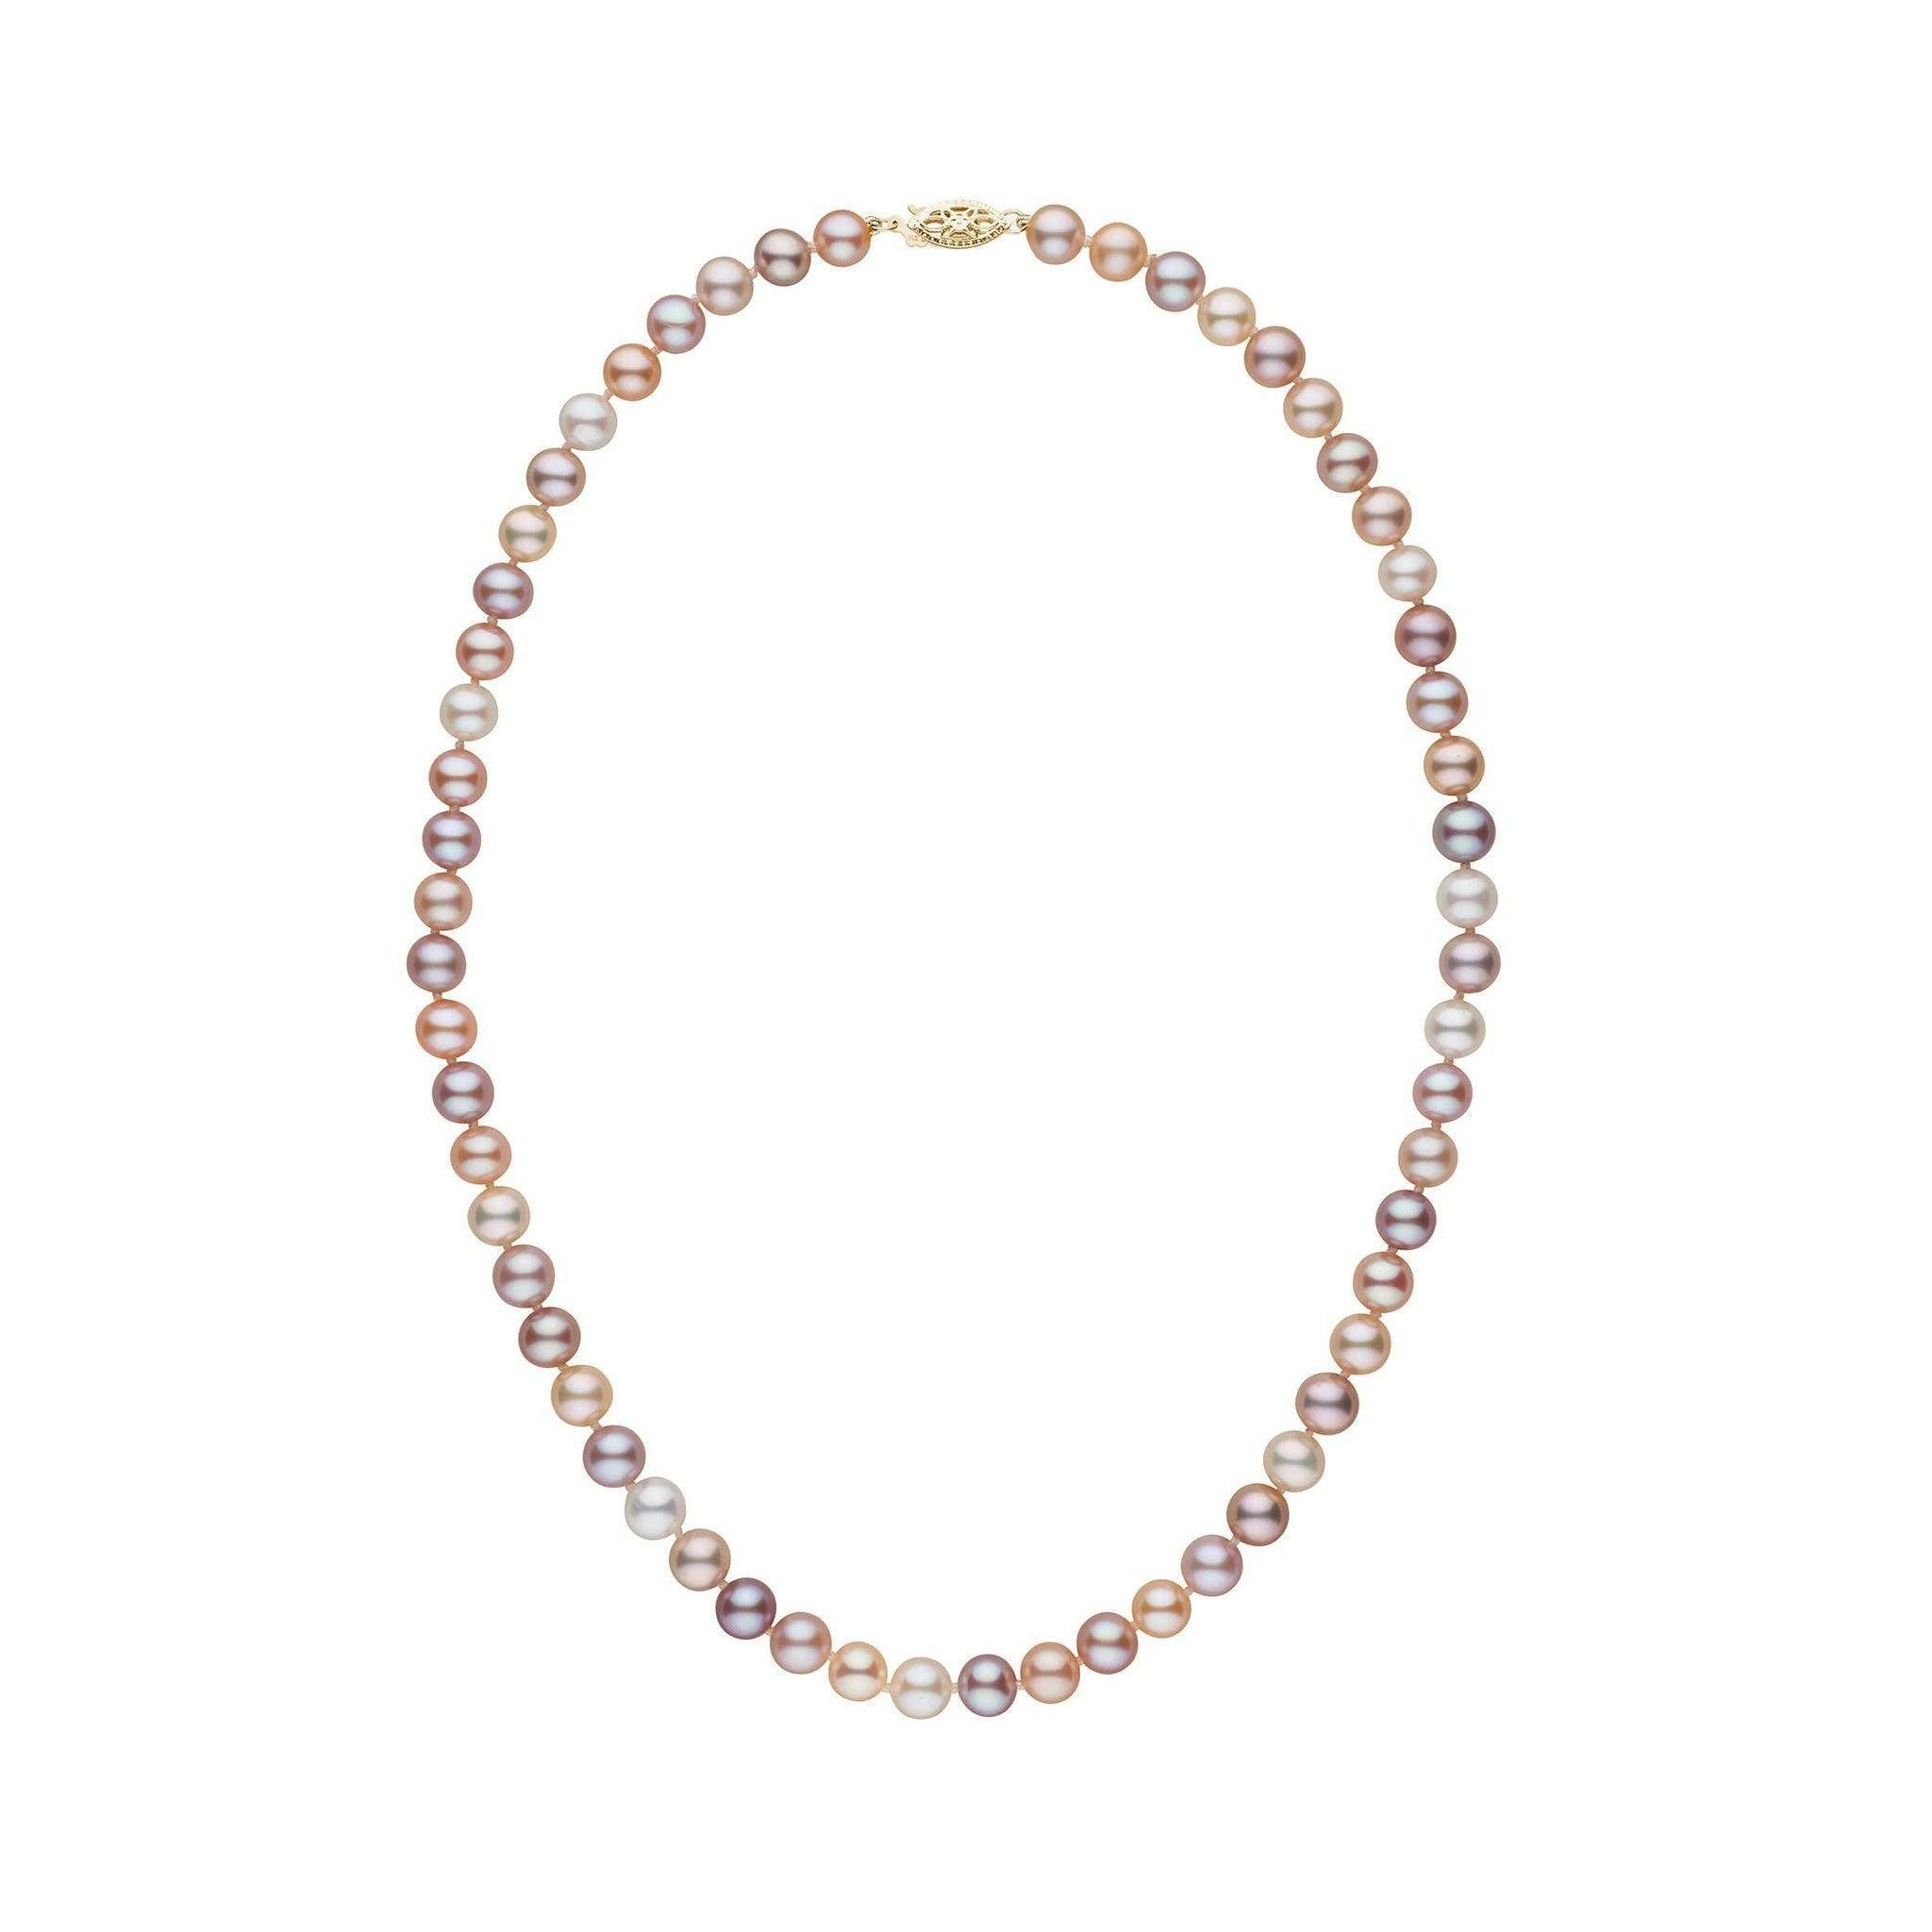 6.5-7.0 mm 16 Inch AAA Multicolor Freshwater Pearl Necklace